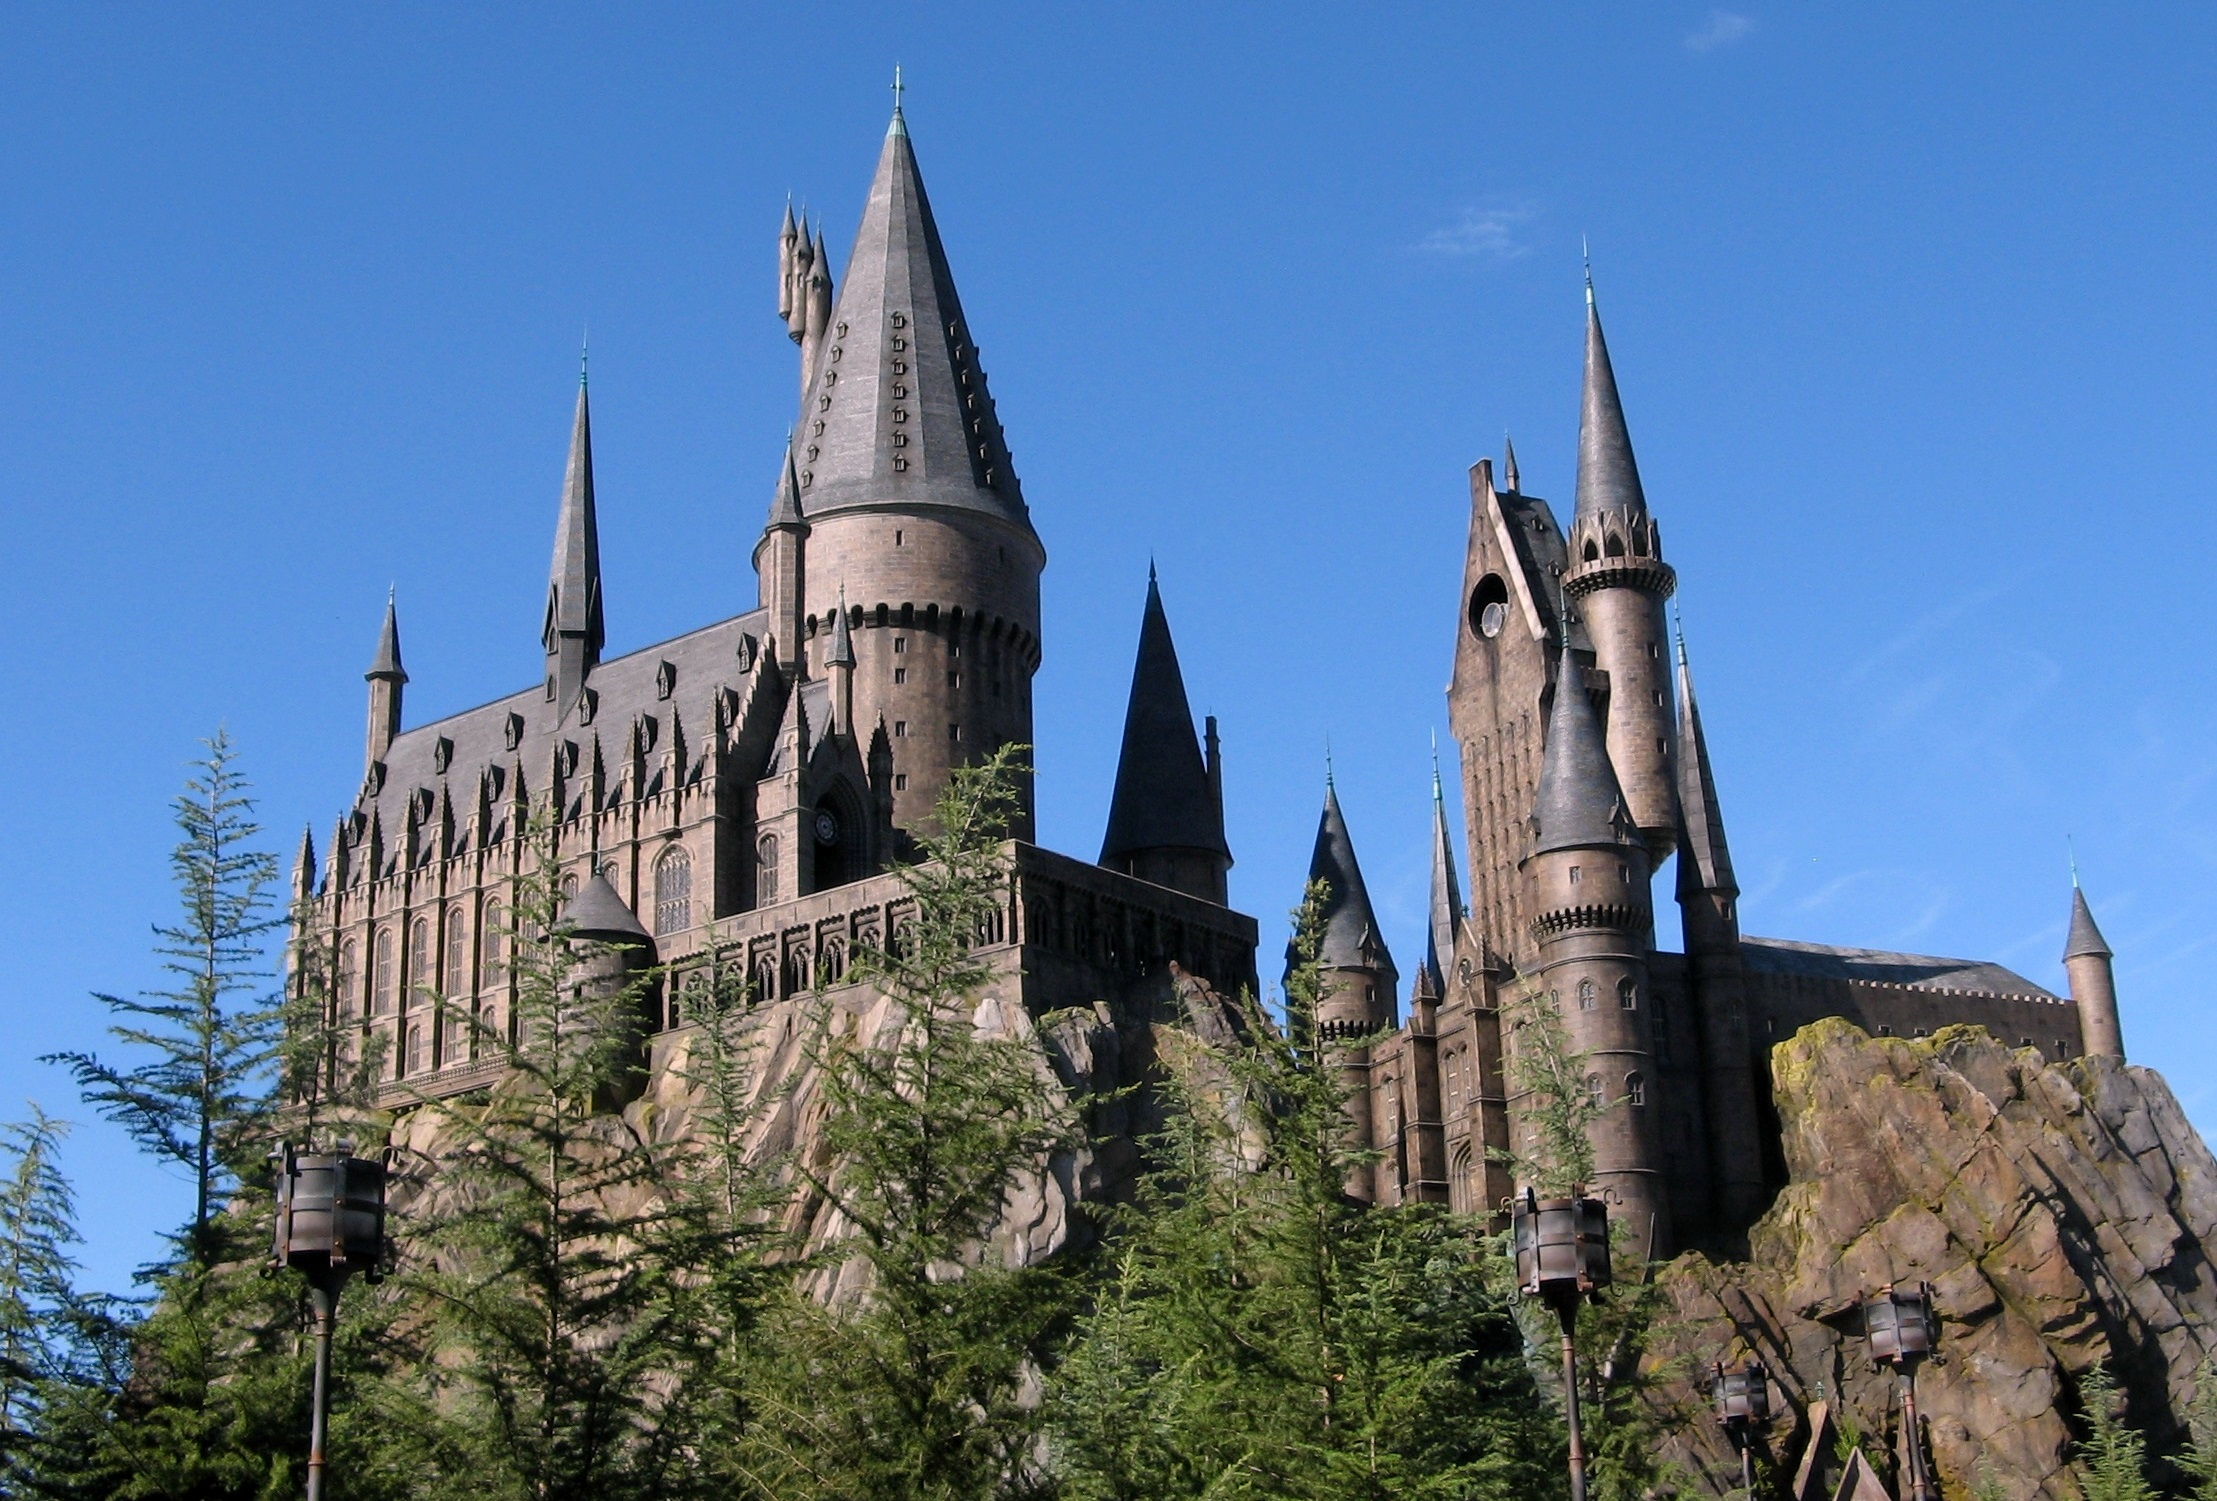 The Wizarding World of Harry Potter will apparently cost a lot more this summer